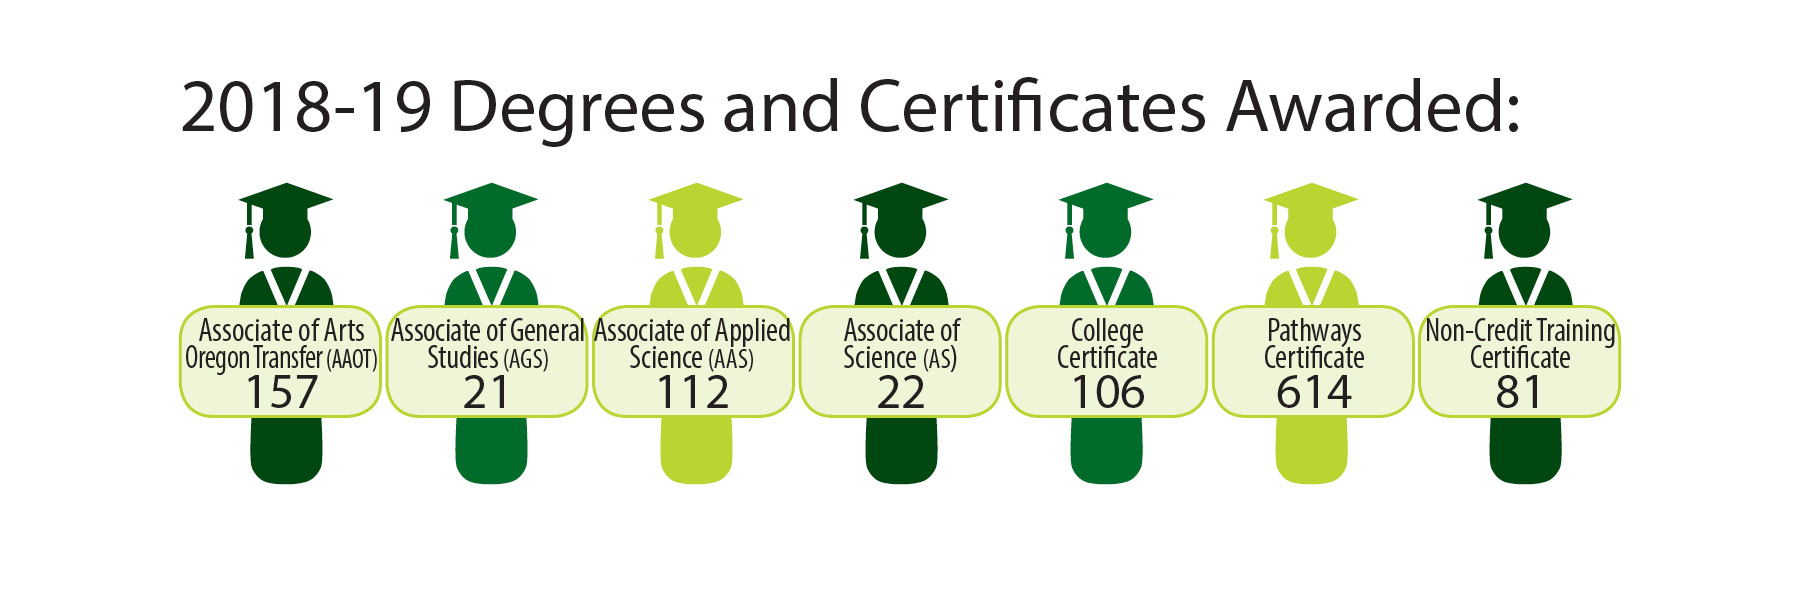 2017 18 Degrees Earned Infographic